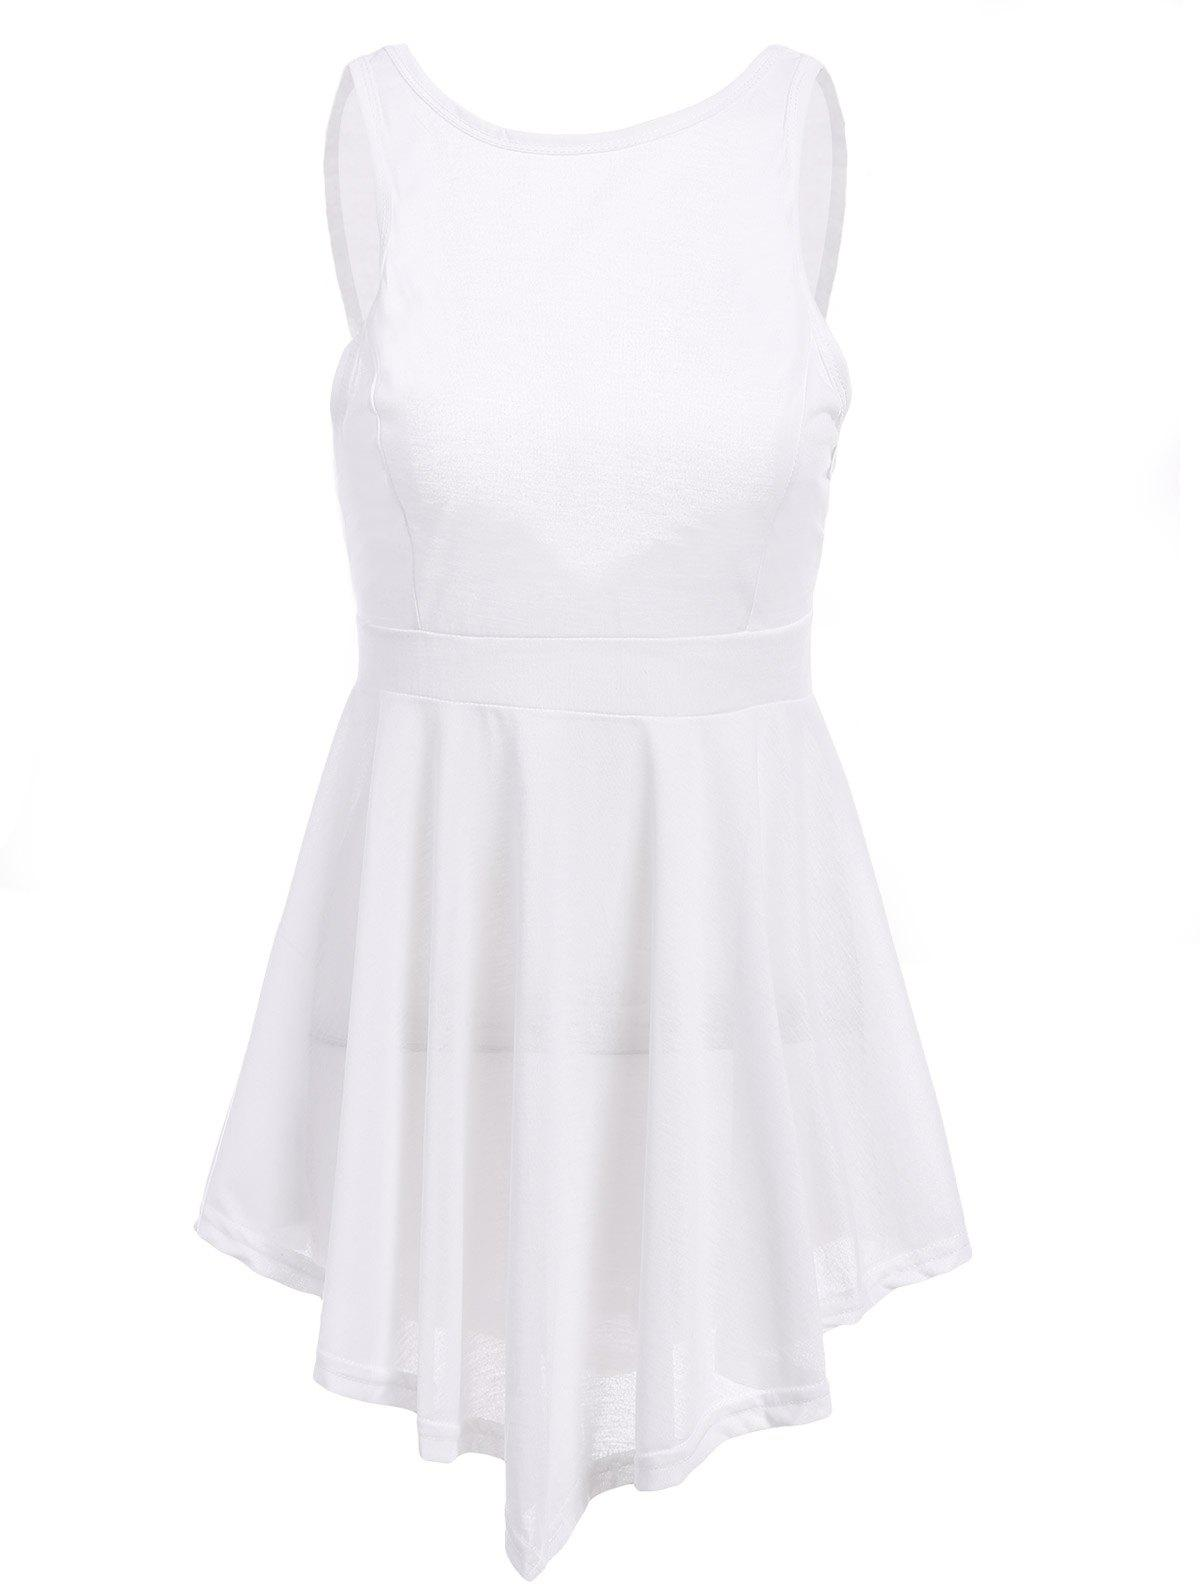 Fashionable Sleeveless Round Collar Solid Color Backless Women's Dress - WHITE M